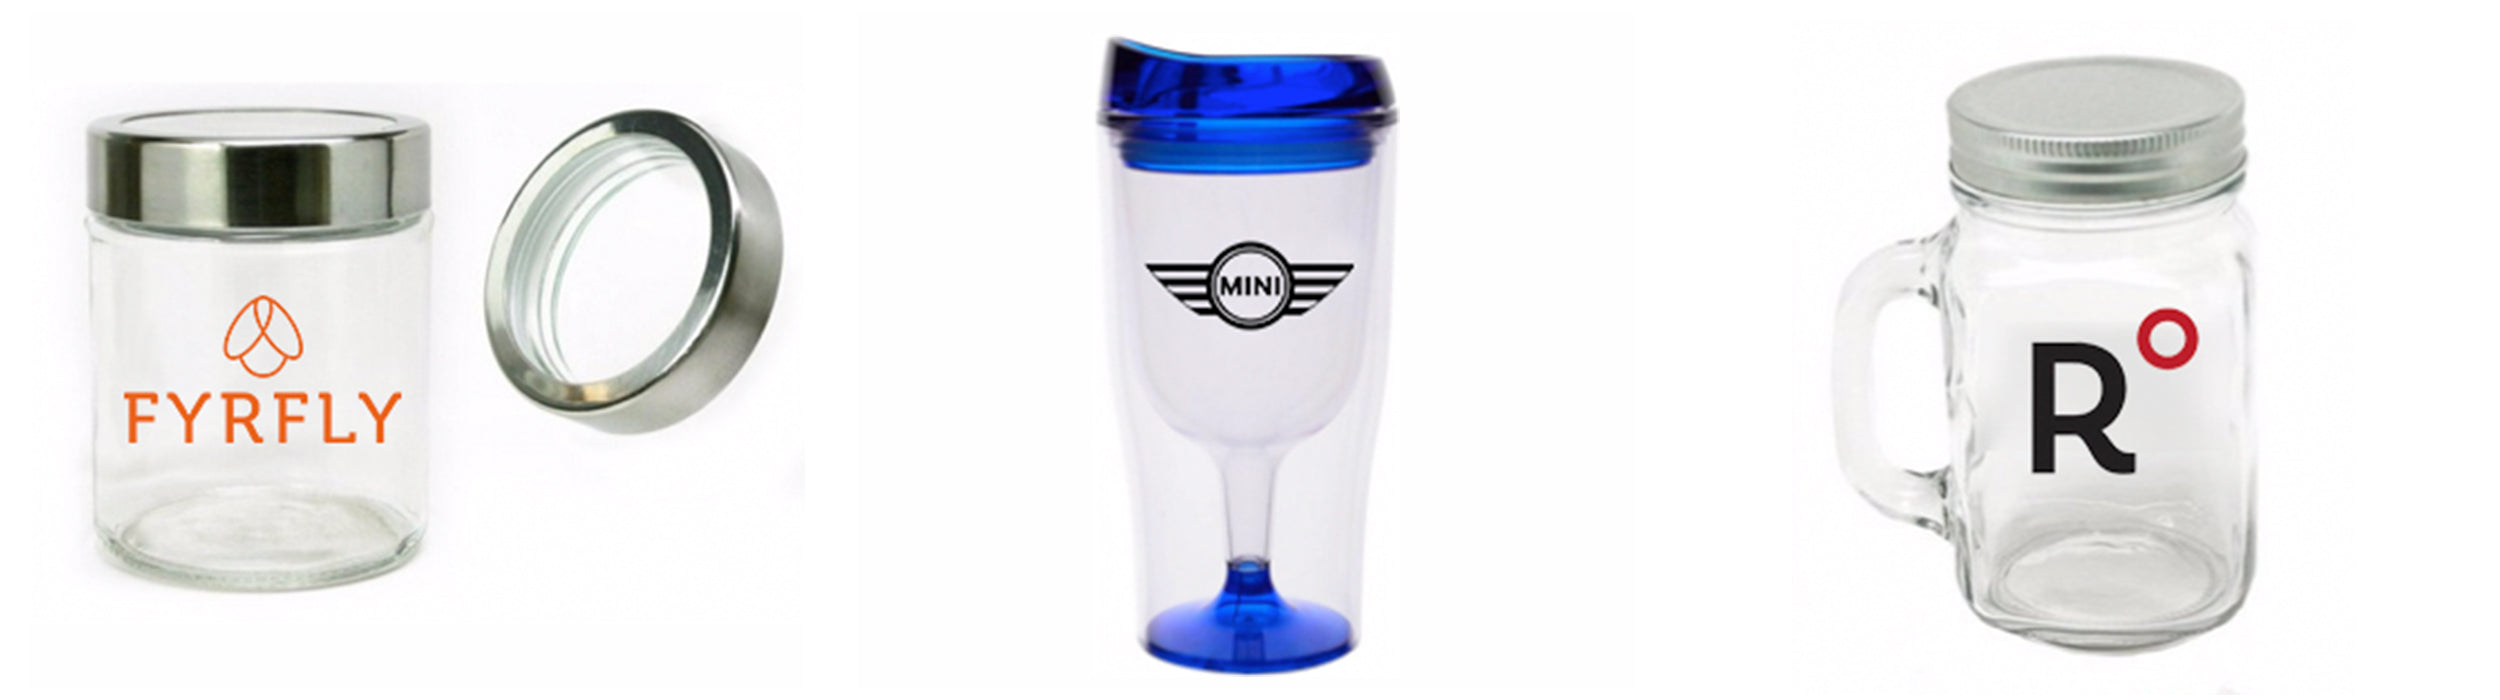 Contain Your Excitement | Branded Cups and Containers